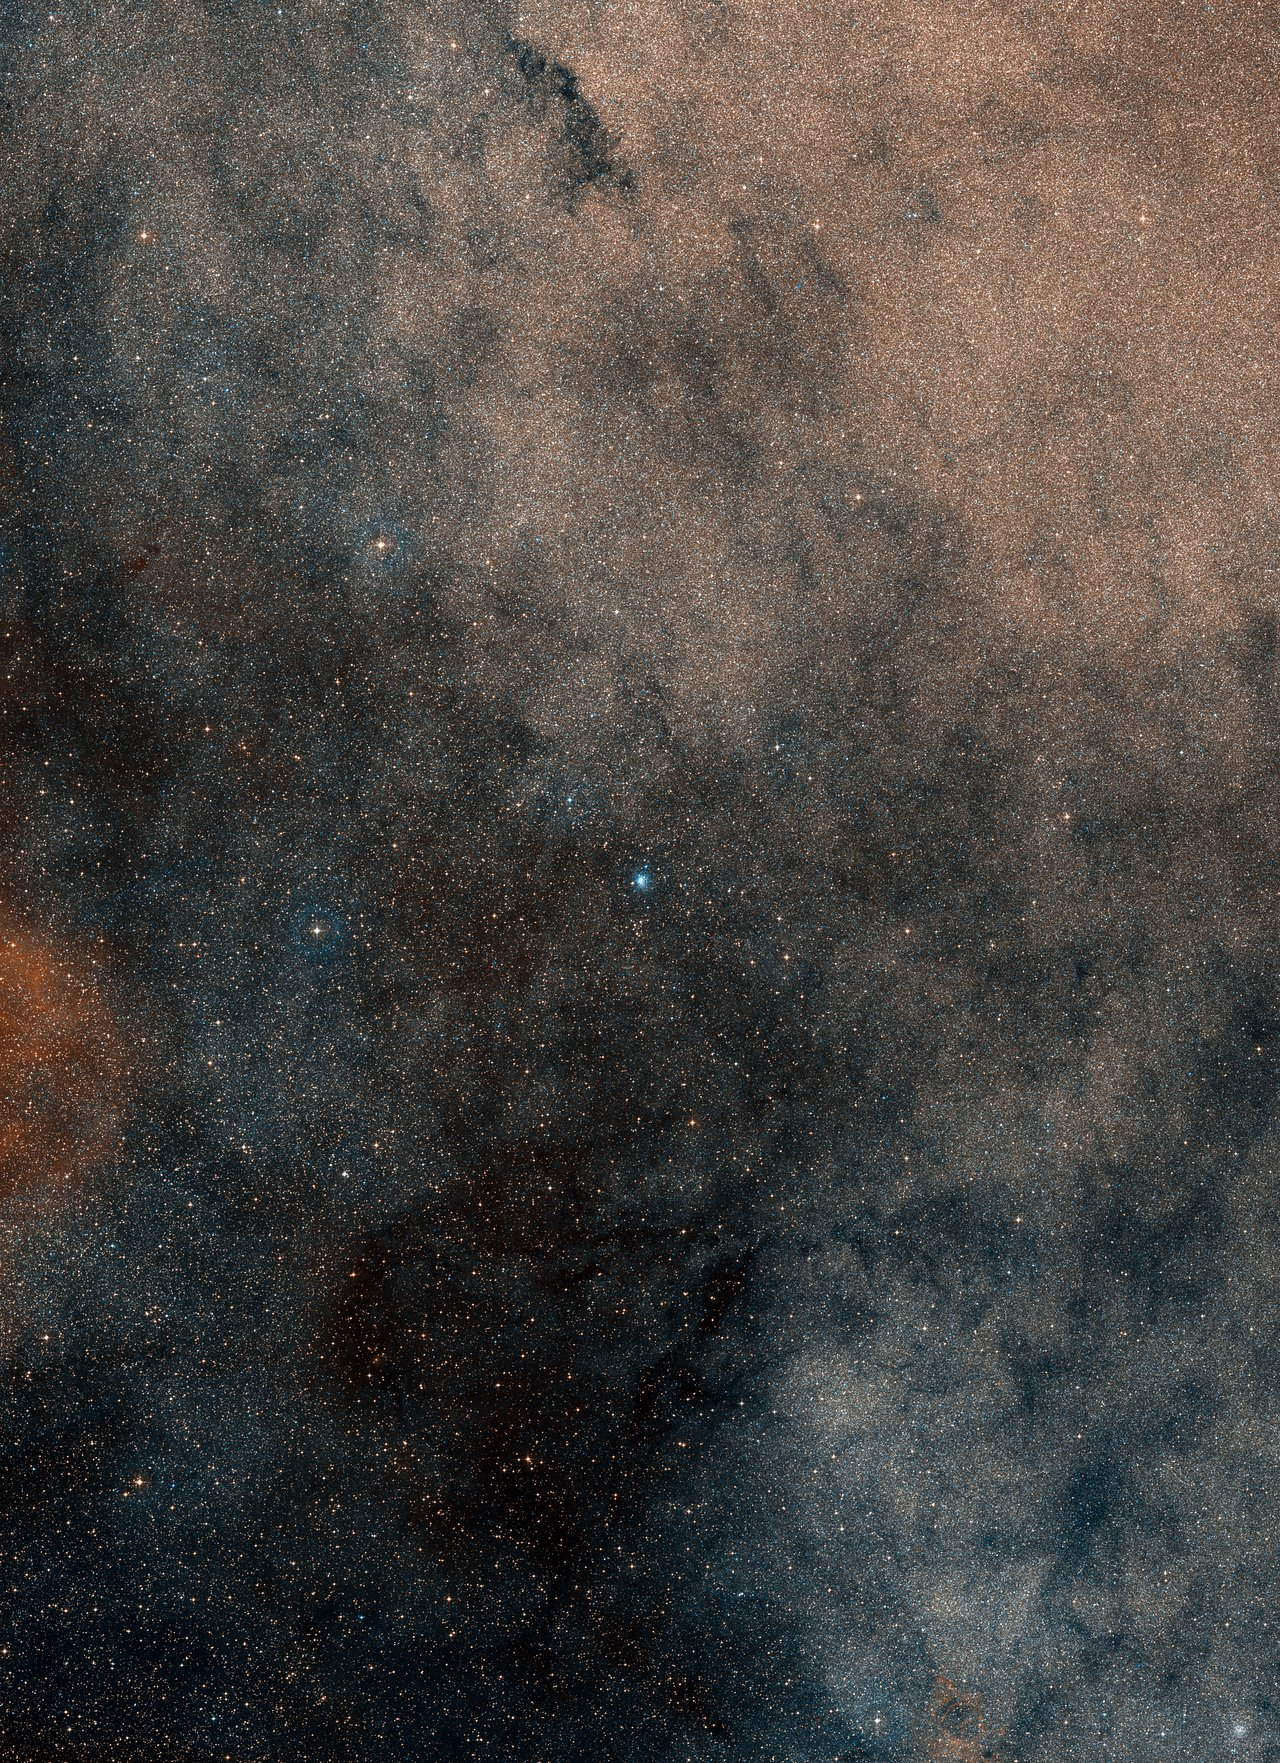 This wide-field image, based on data from Digitized Sky Survey 2, shows the whole region around the stellar grouping Terzan 5 – Image Credit: ESO/Digitized Sky Survey 2